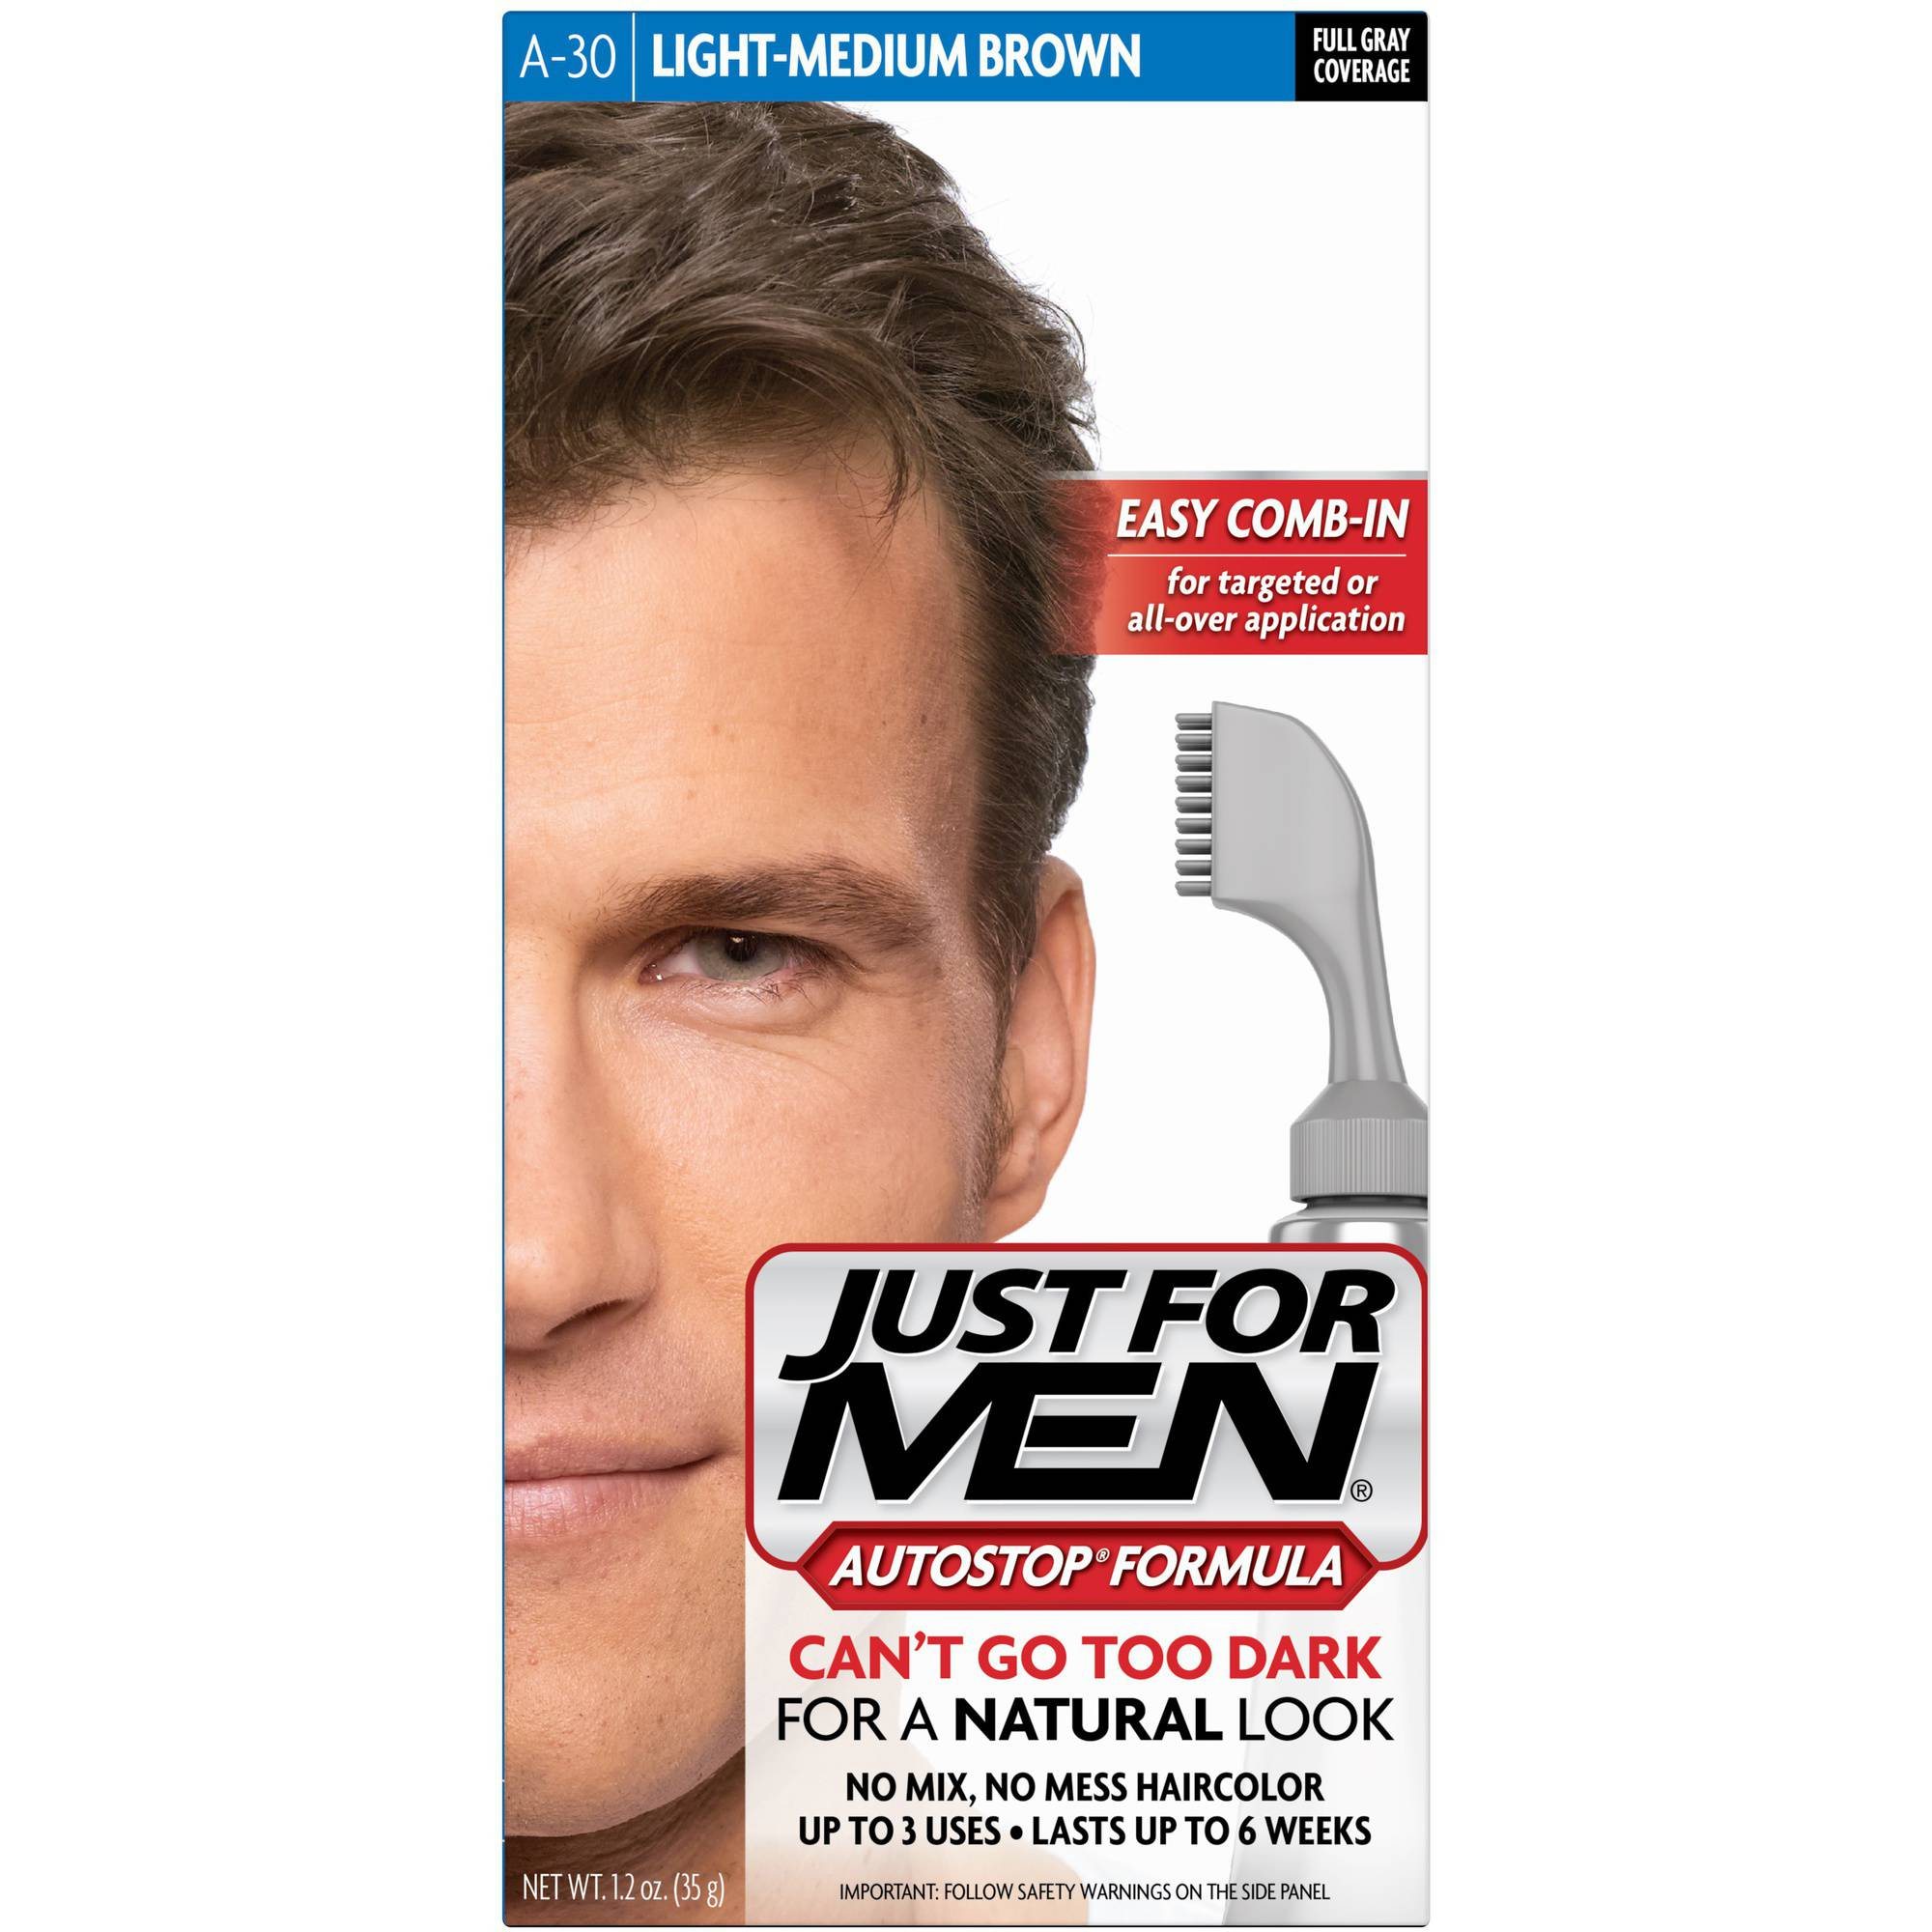 Just For Men AutoStop Formula, Men's Hair Color, Light Medium Brown (A-30)